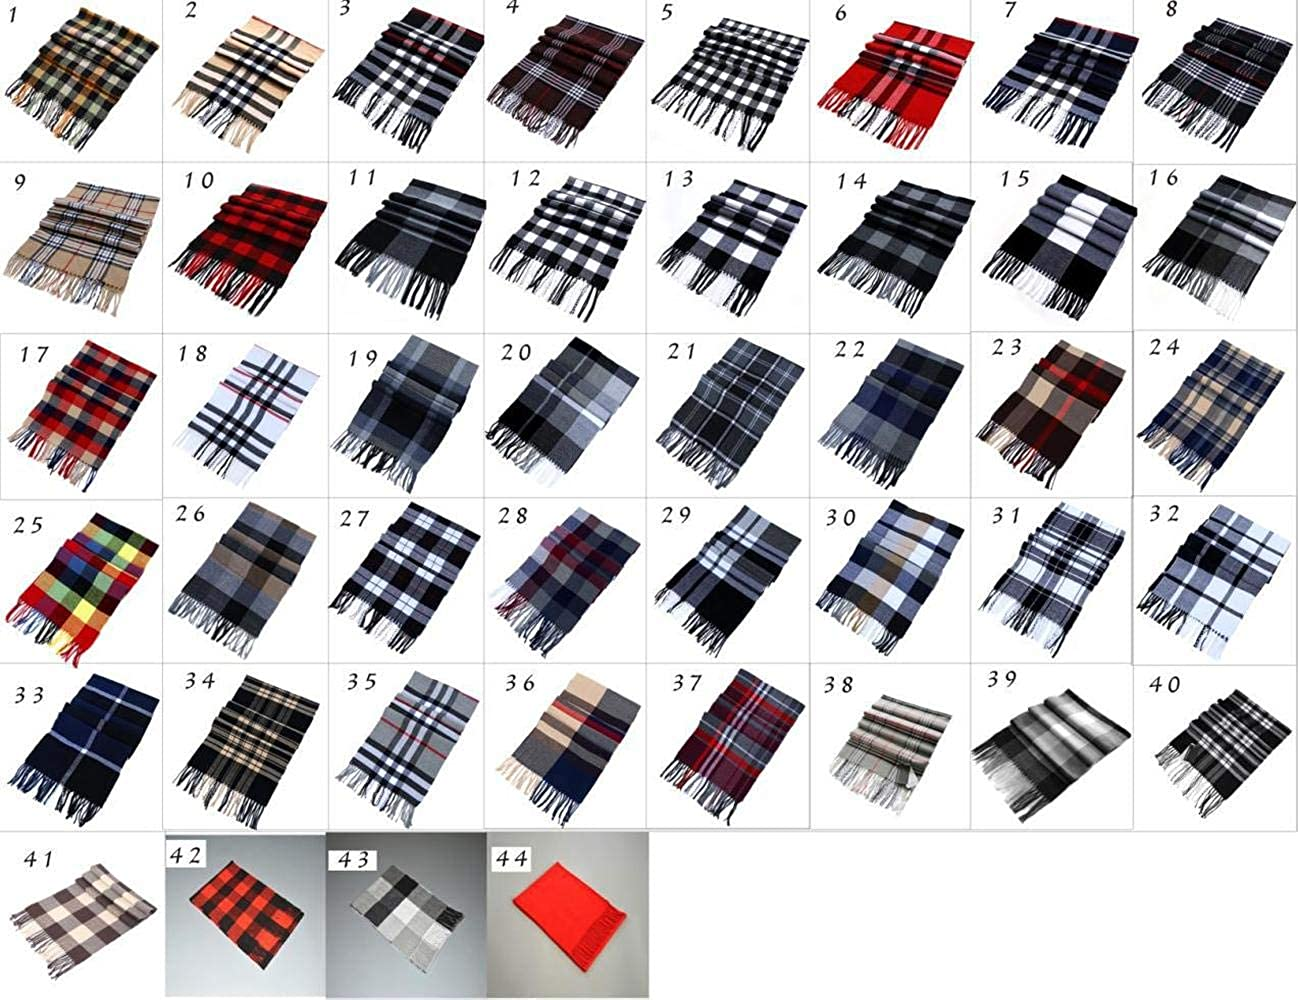 New Autumn and Winter Mens Womens Plaid Cashmere Scarves for Gift of Lovers Necks Scarf